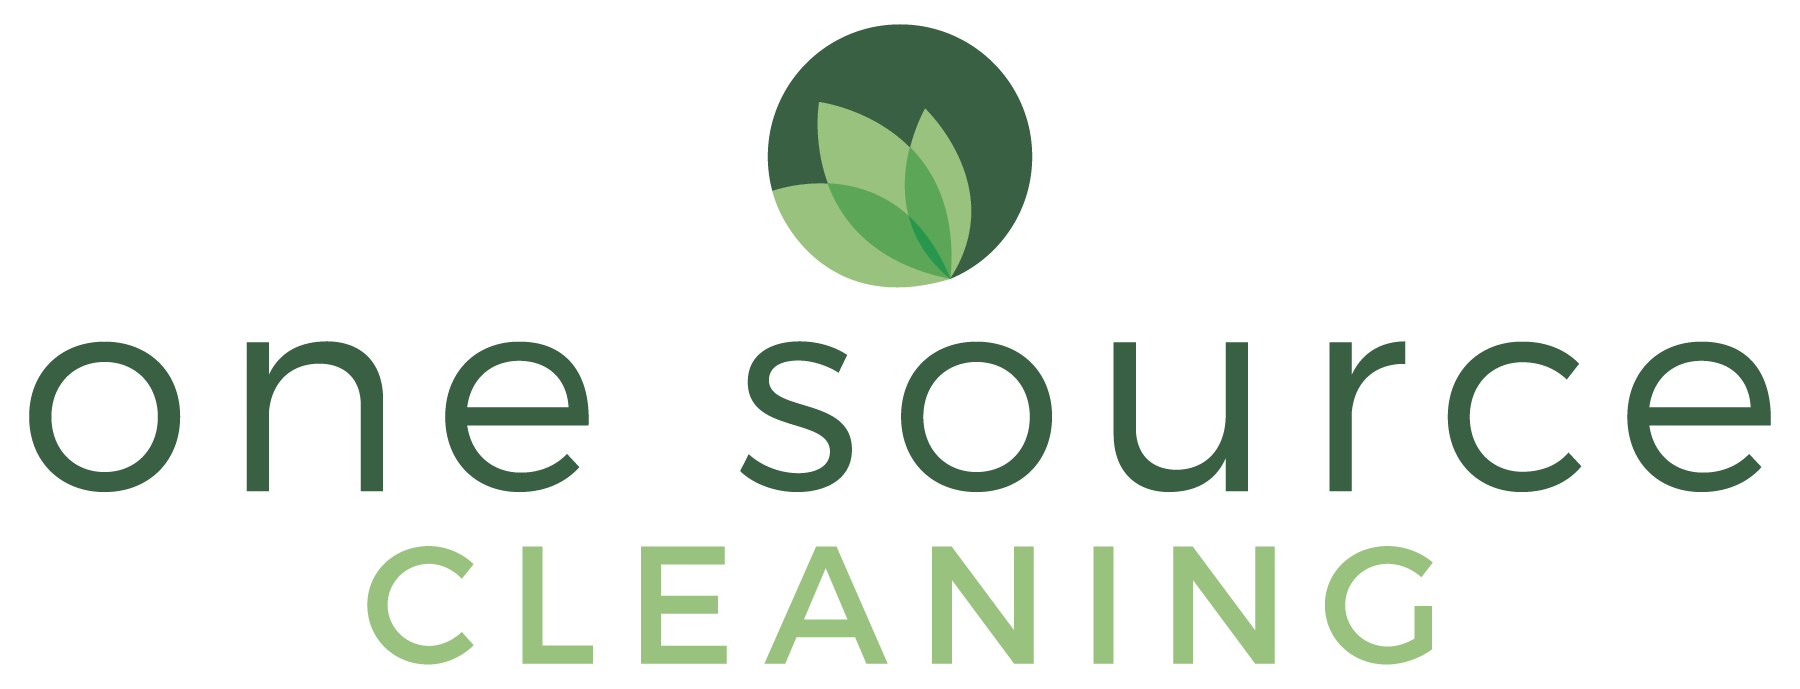 One Source Cleaning, LLC logo